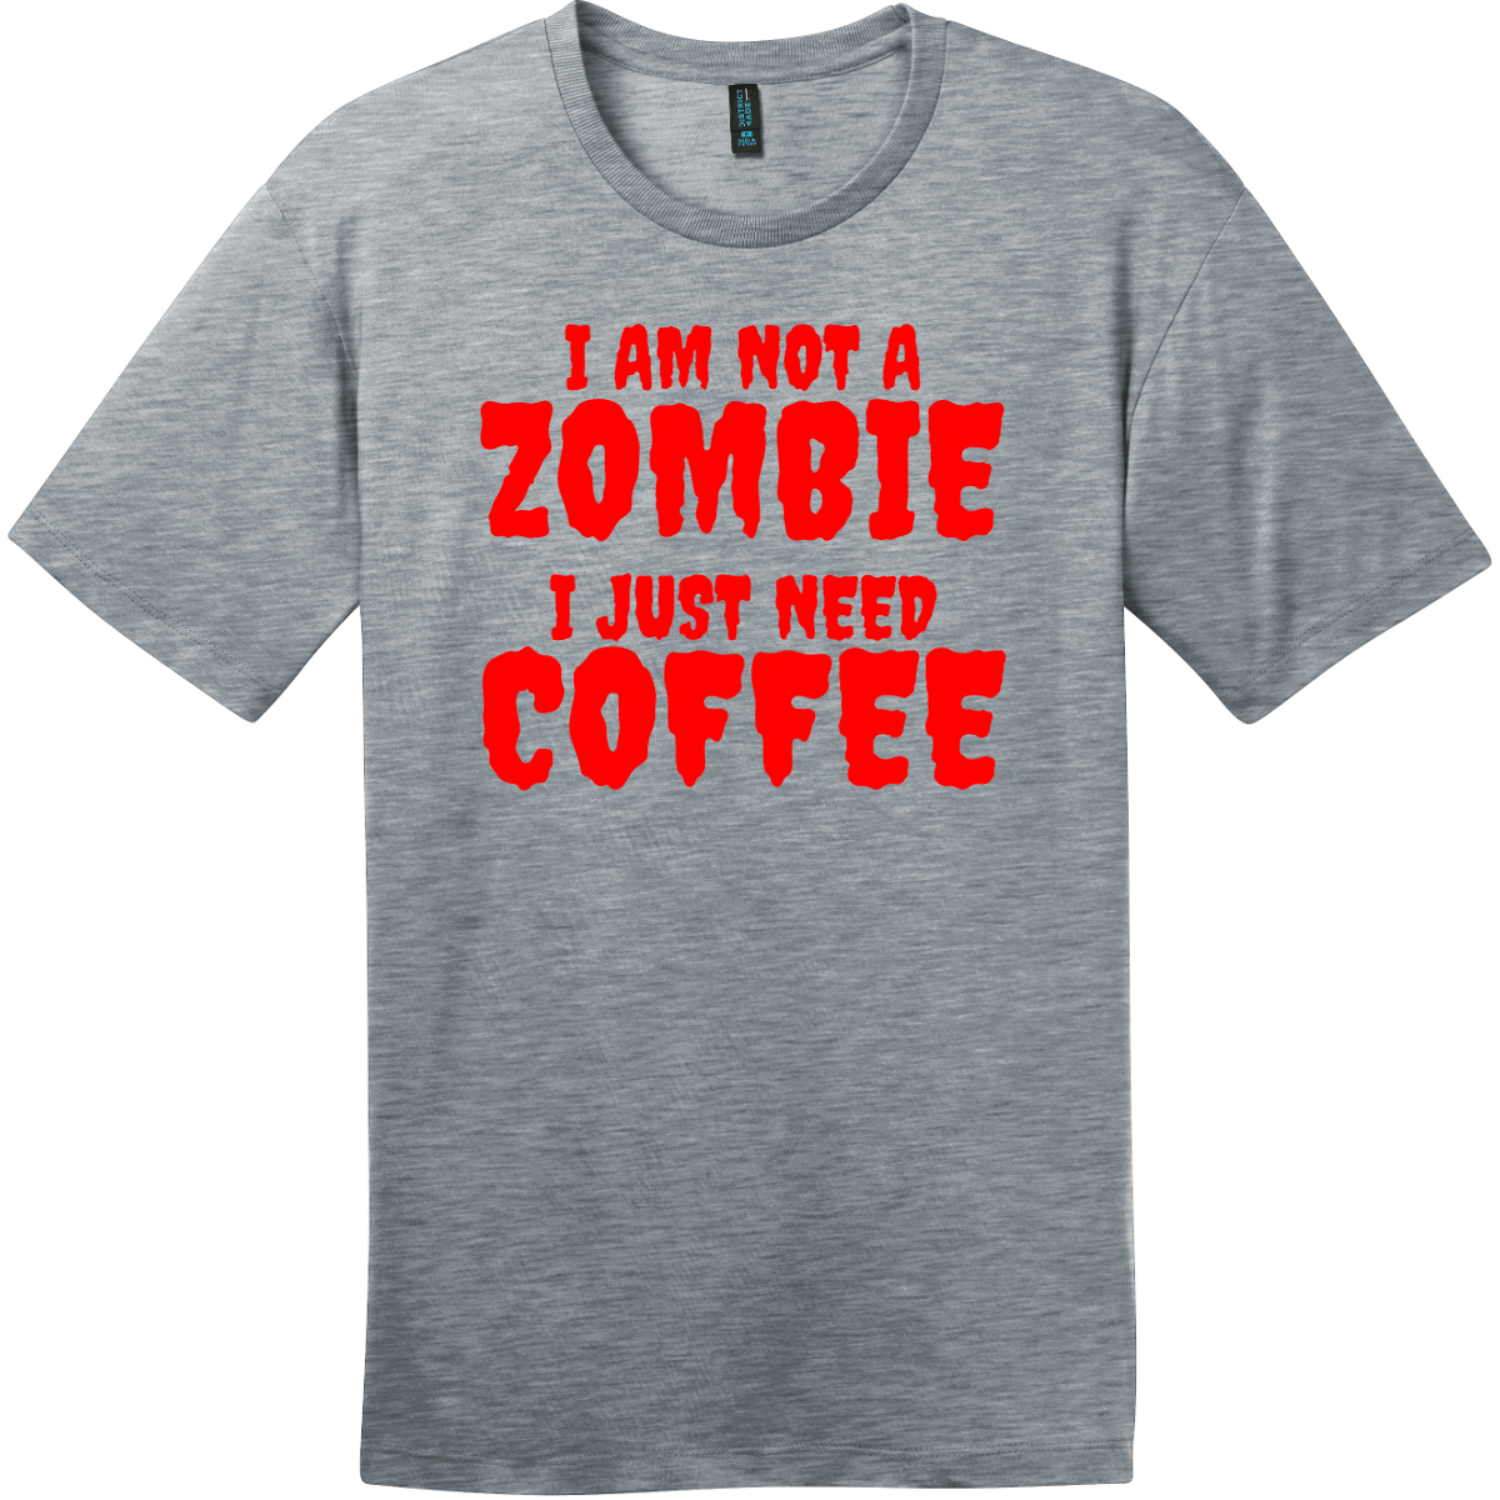 Zombie Coffee T-Shirt Heathered Steel District Perfect Weight Tee DT104